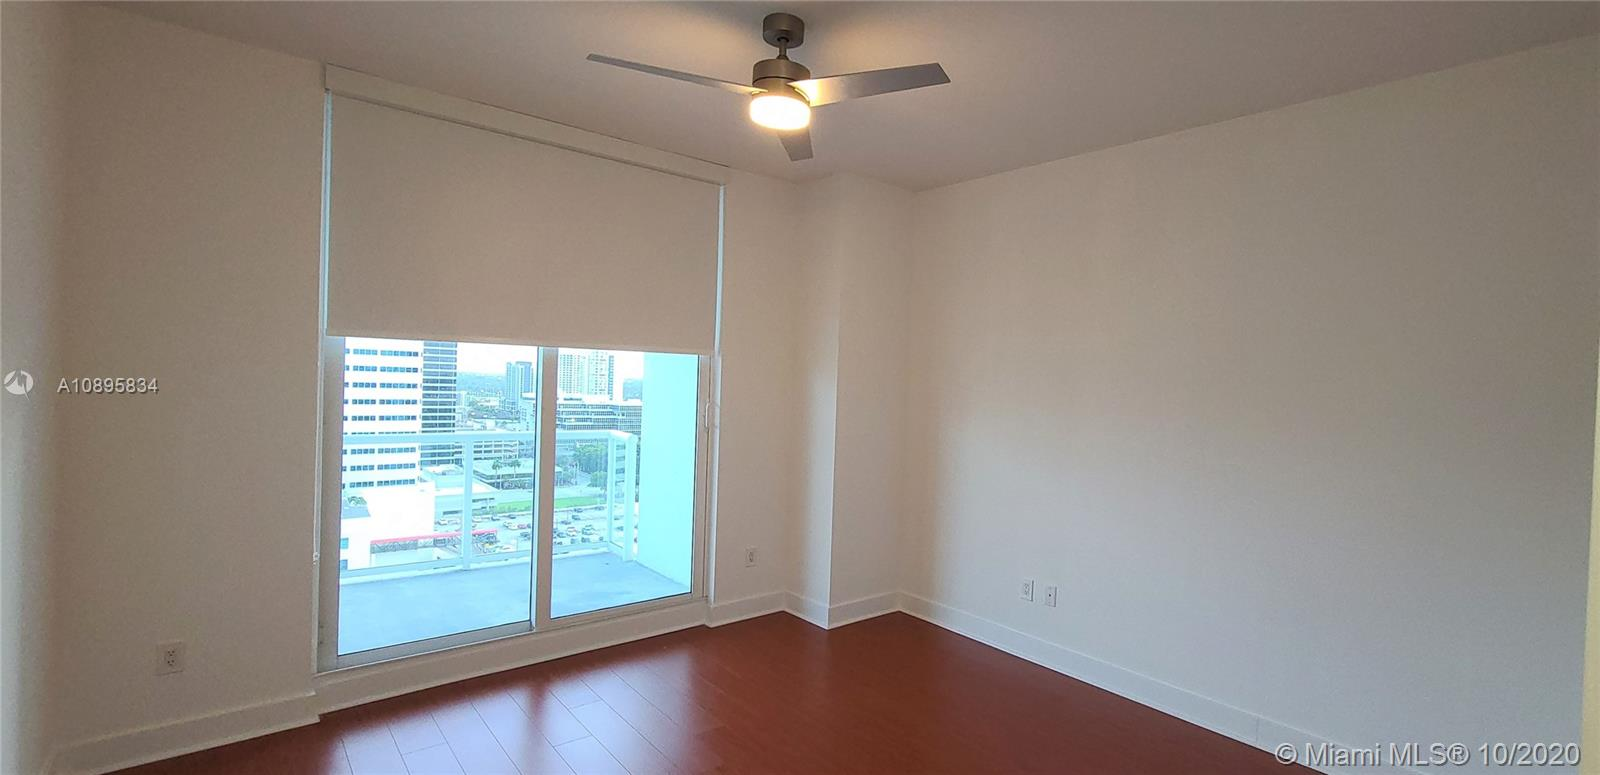 315 NE 3rd Ave #2004 For Sale A10895834, FL